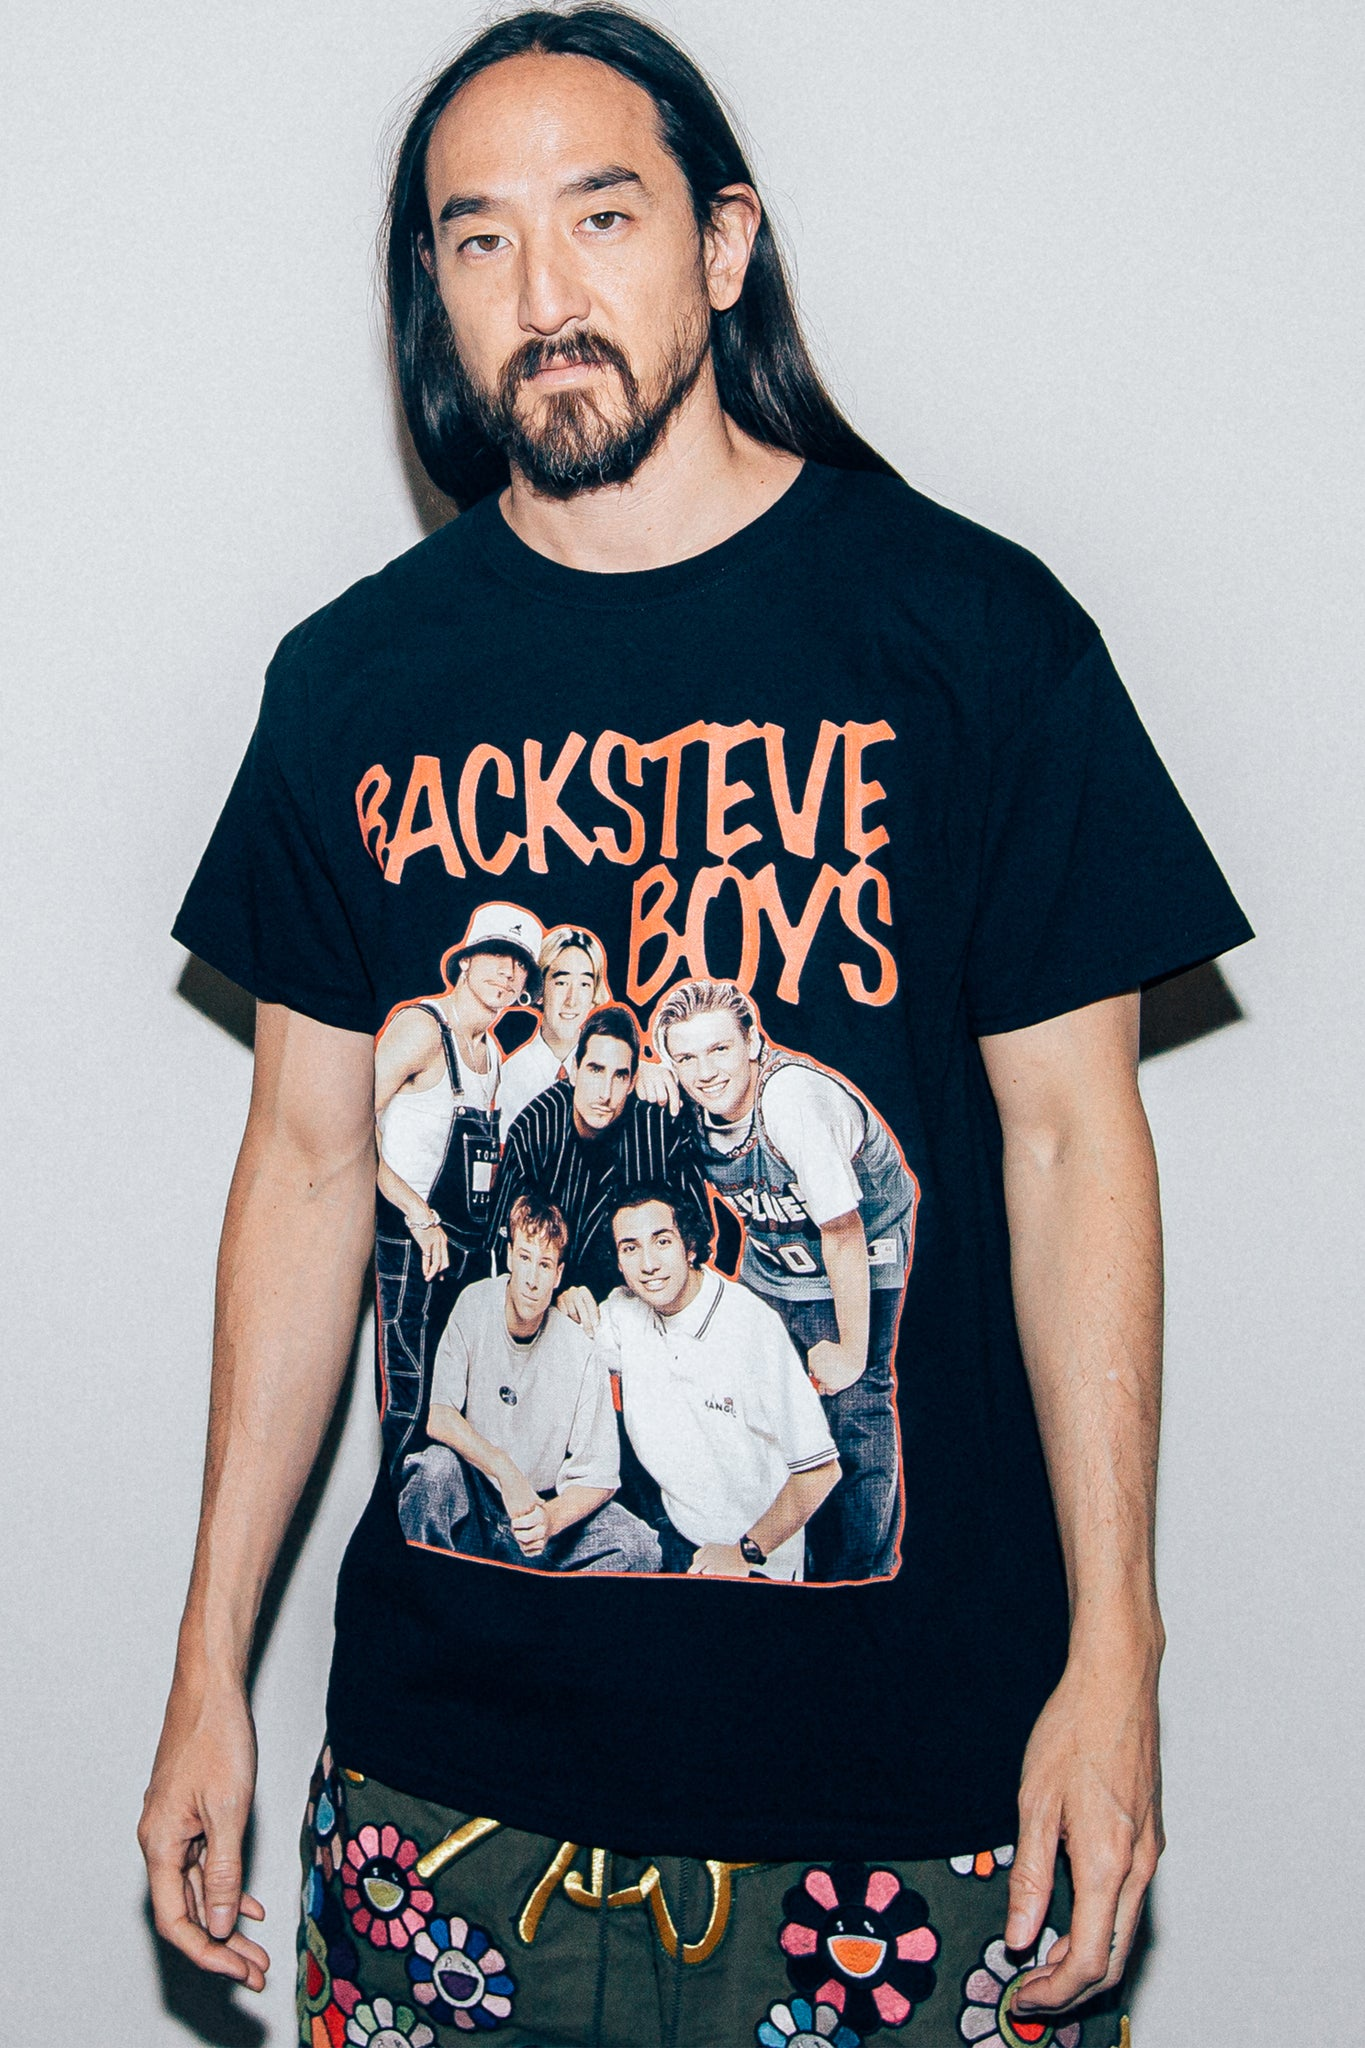 BackSteve Boys Bootleg Tee